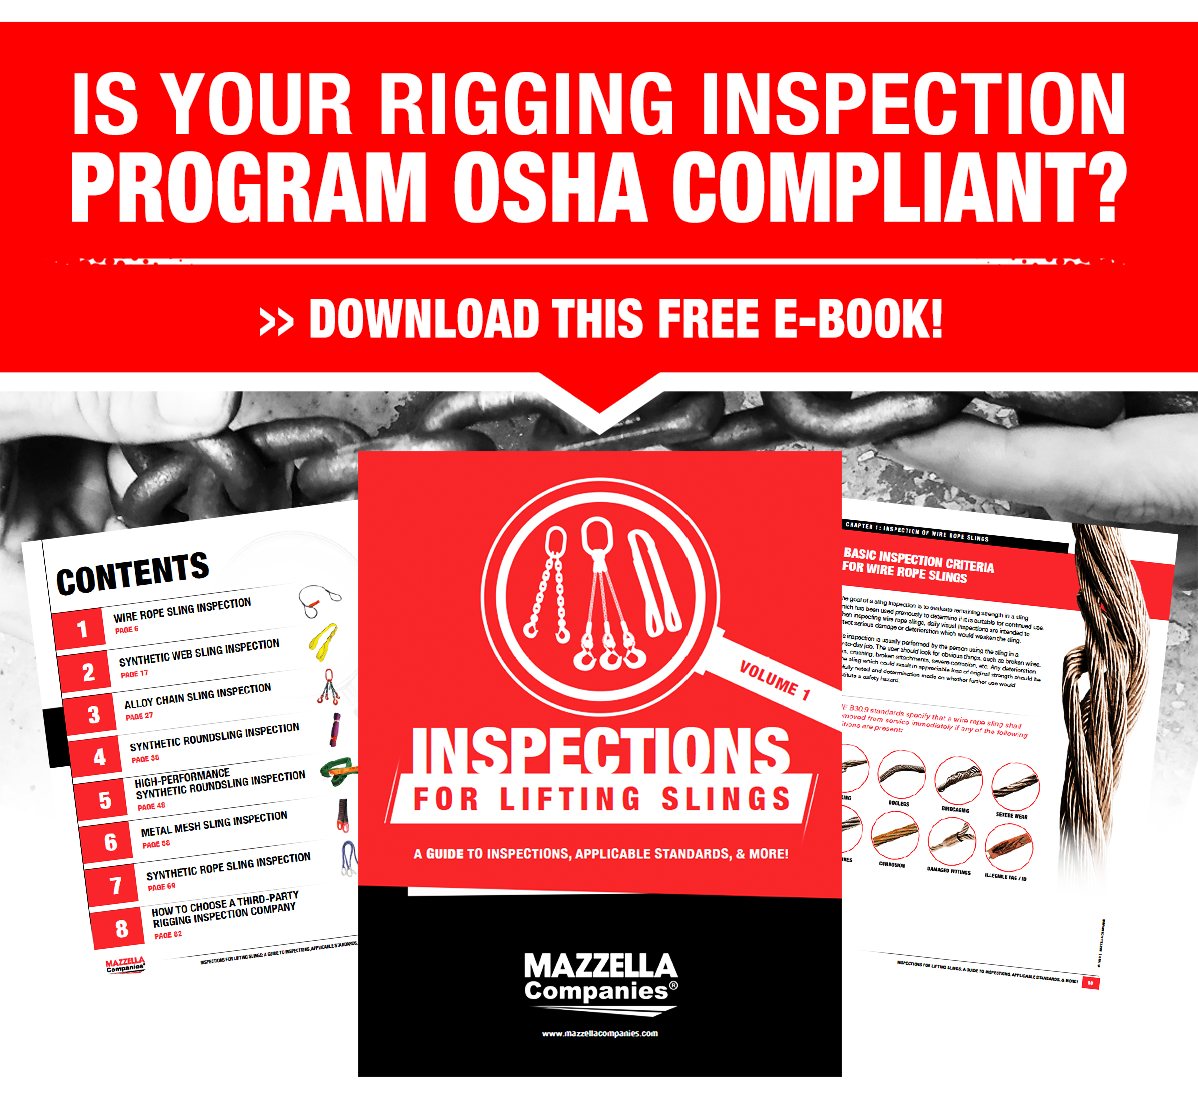 Download your free sling inspection e-book